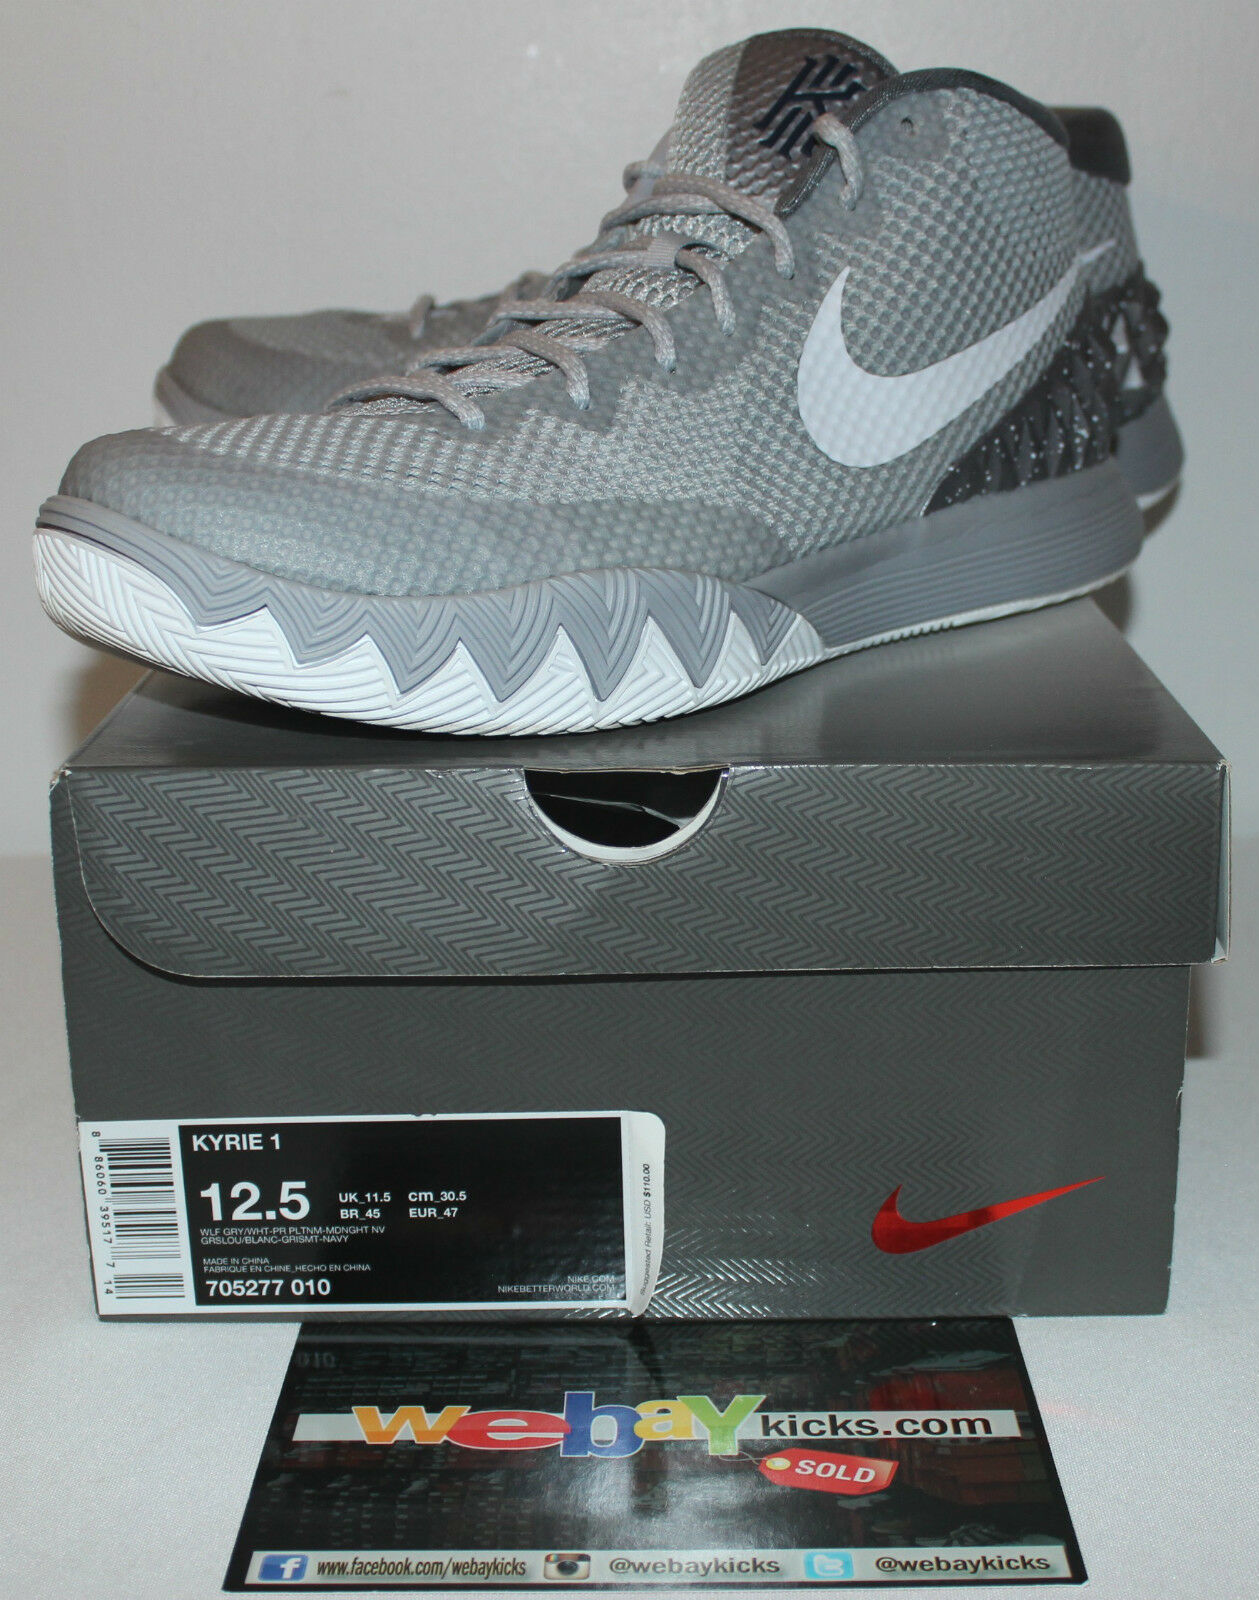 2b66c97c7f4 ... get nike air air nike kyrie 1 i wolf grey gray silver white sneakers  mens size